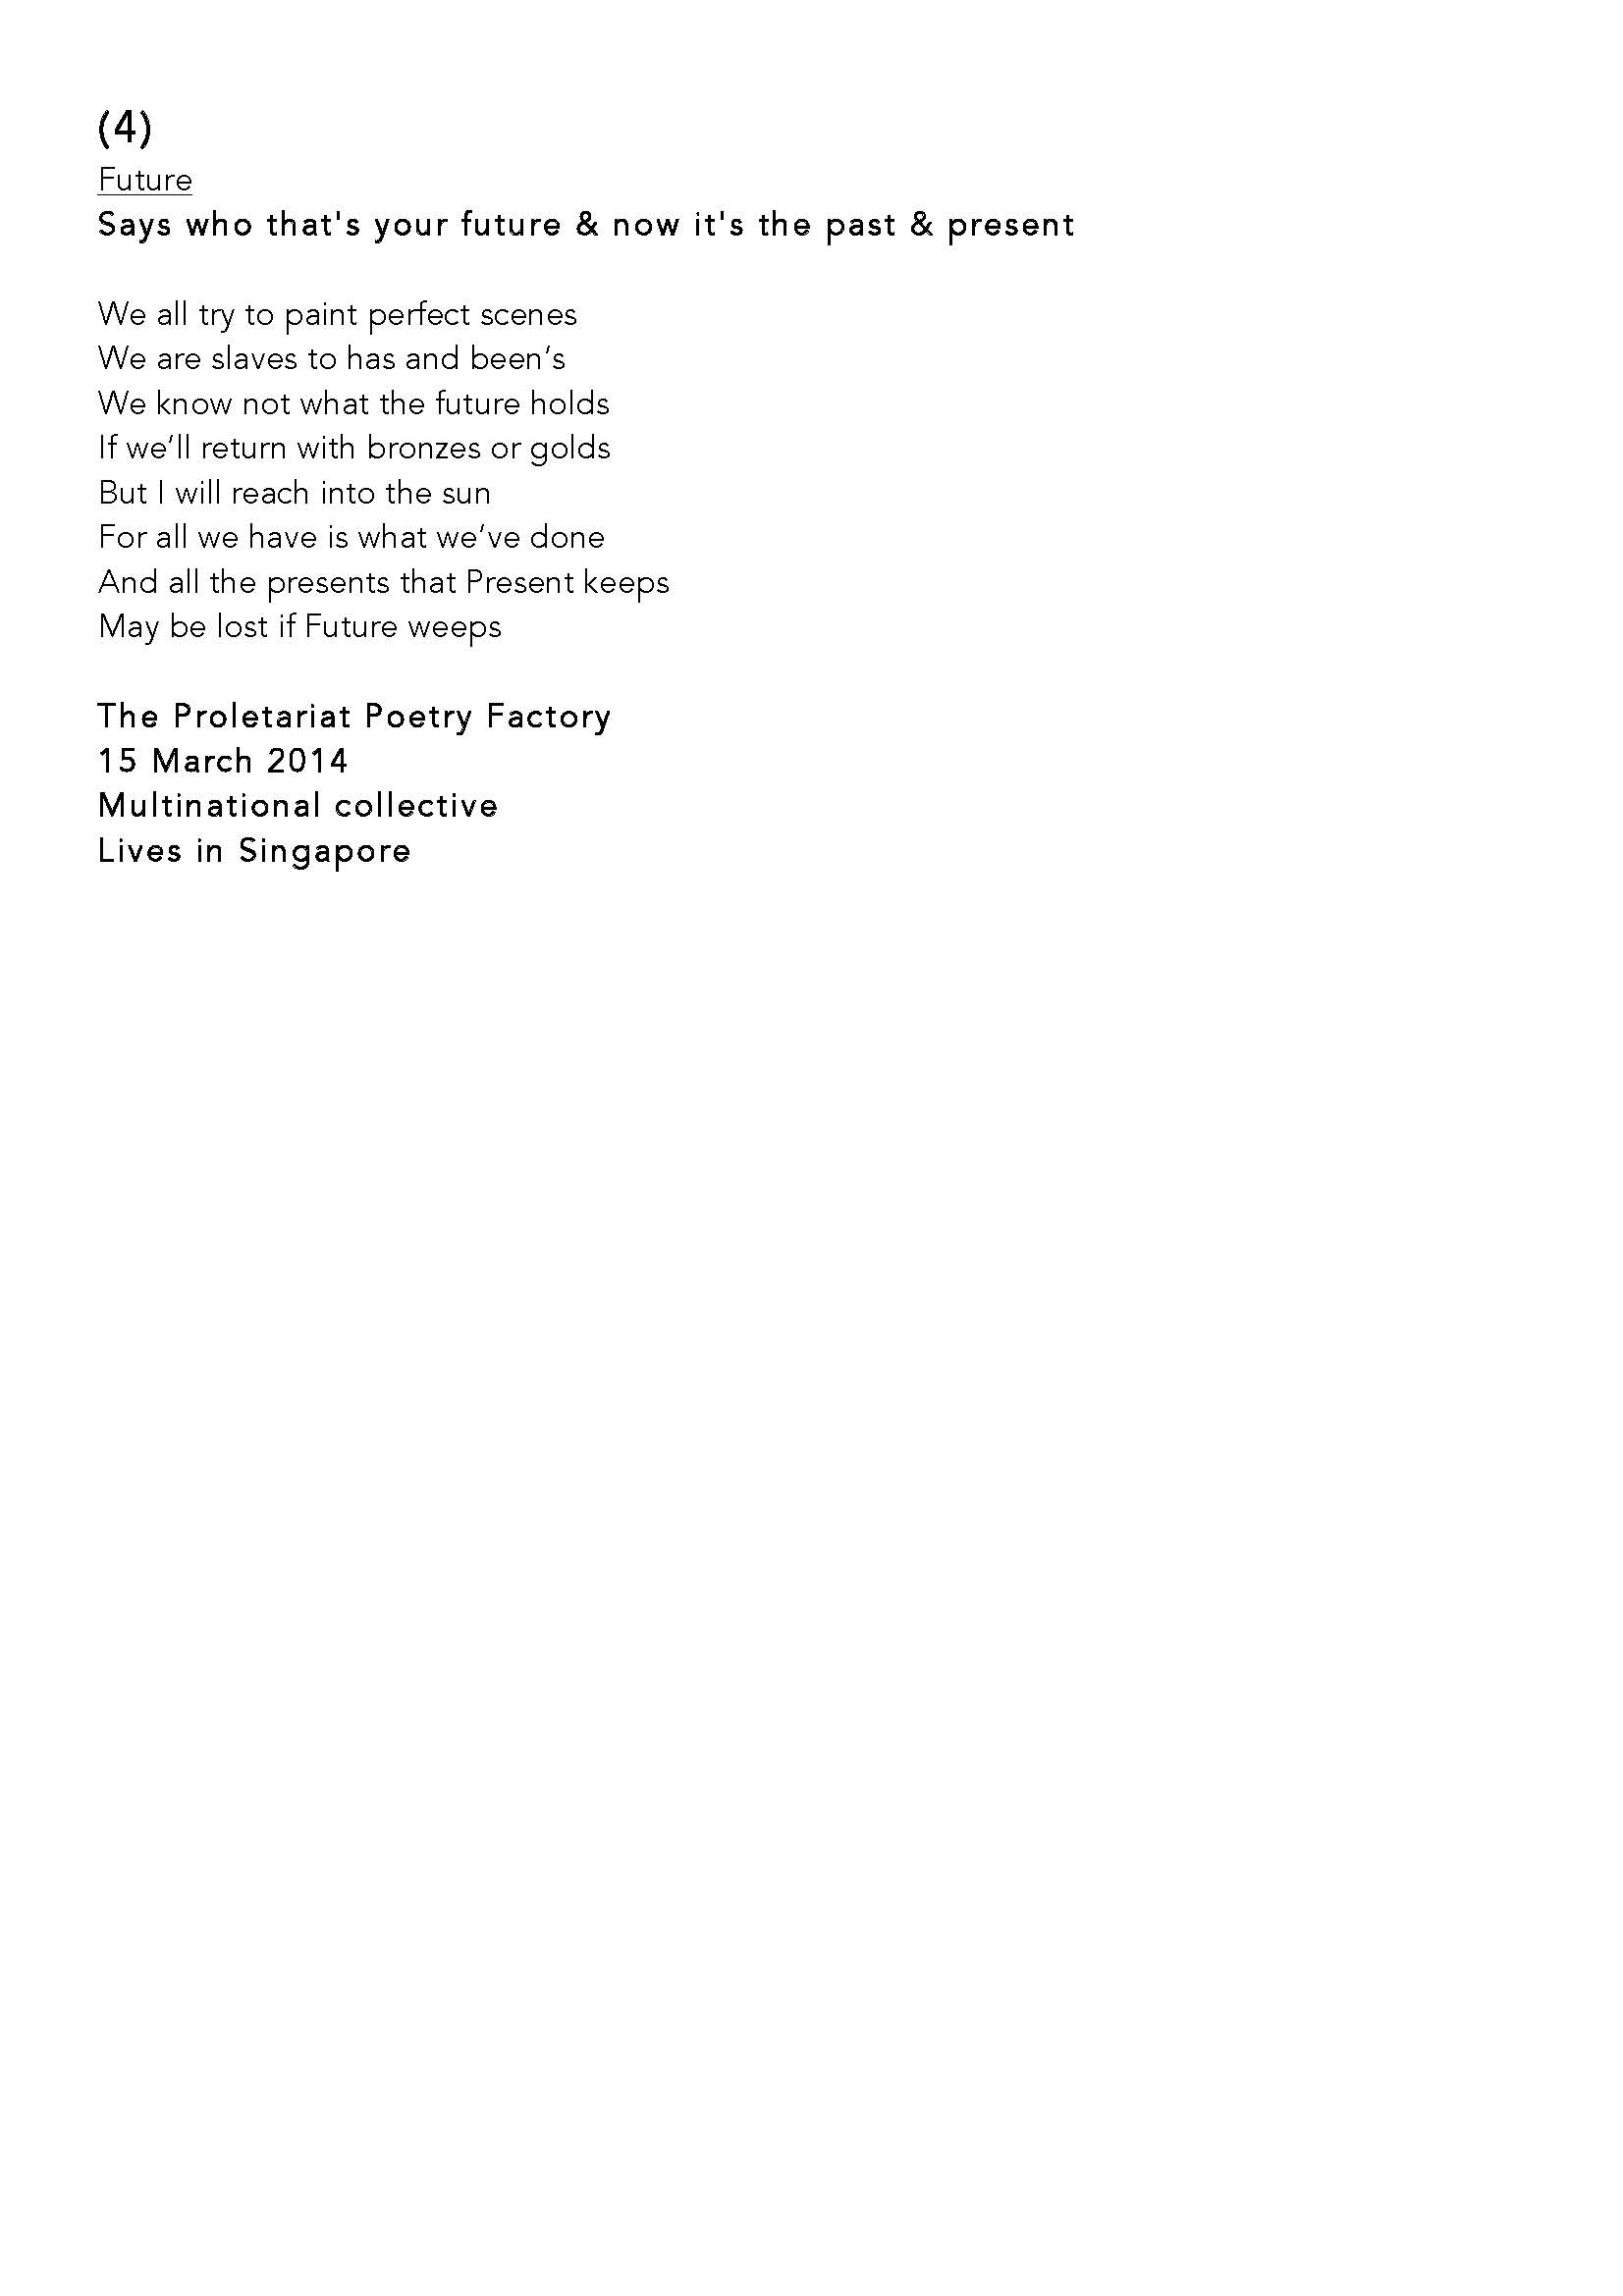 Poetry Collection - Everyone can Poetry_March 2014_Page_4.jpg